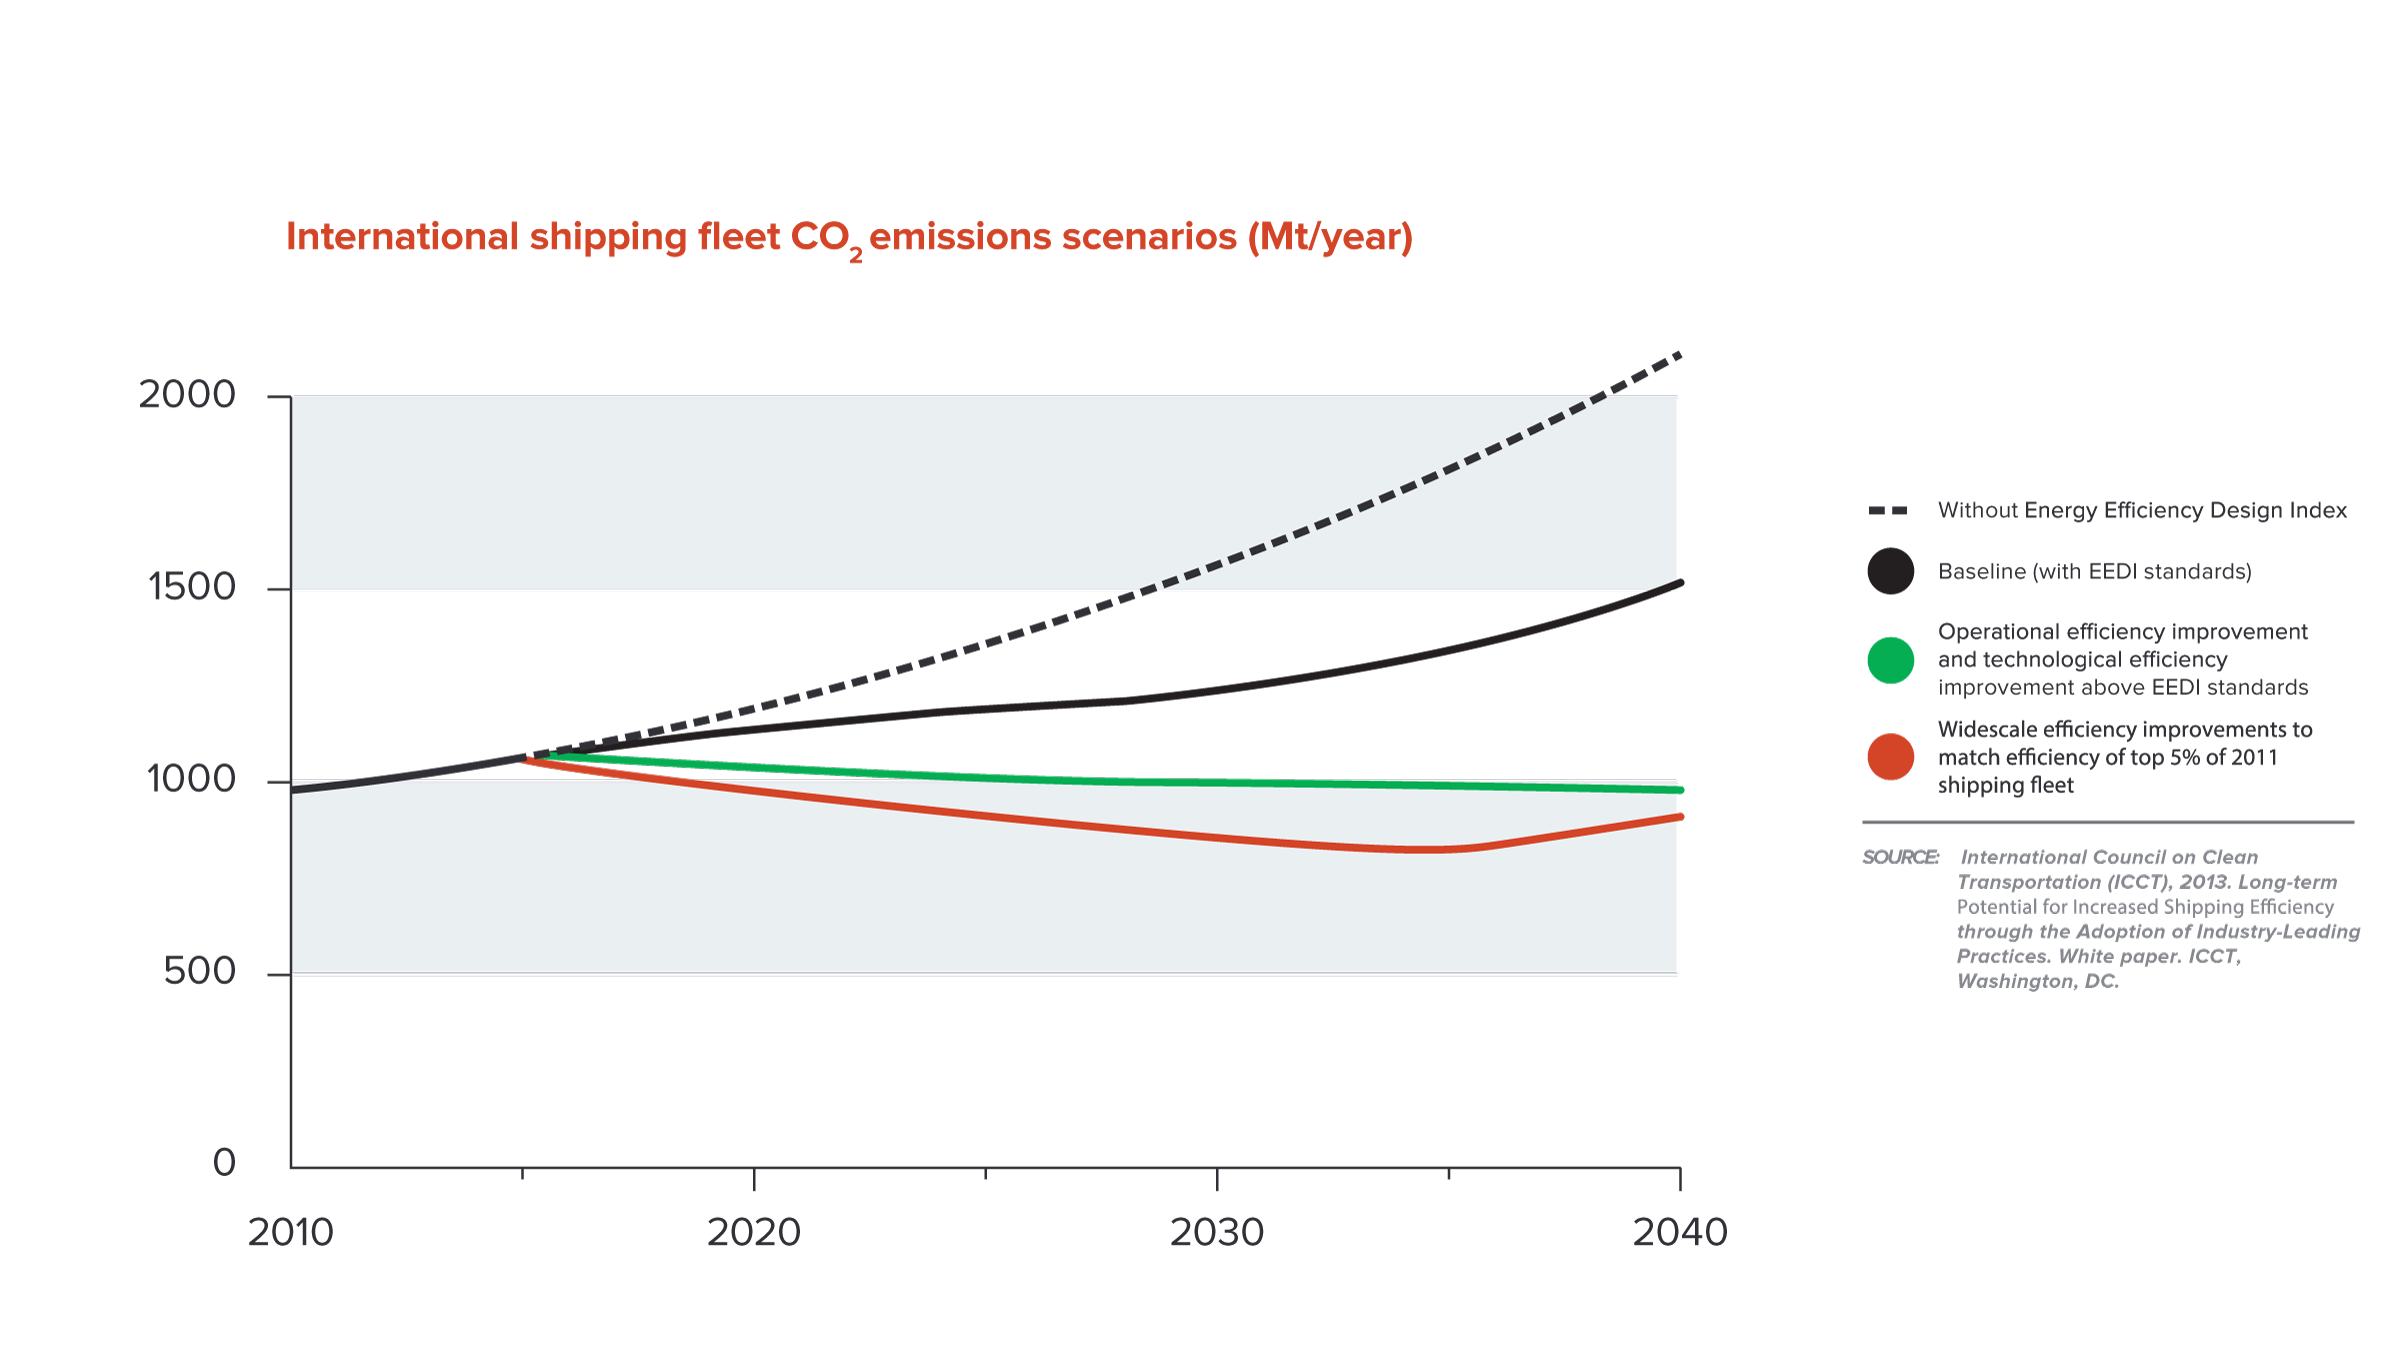 Figure-12---Shipping-fleet-CO2-emissions_v4_am